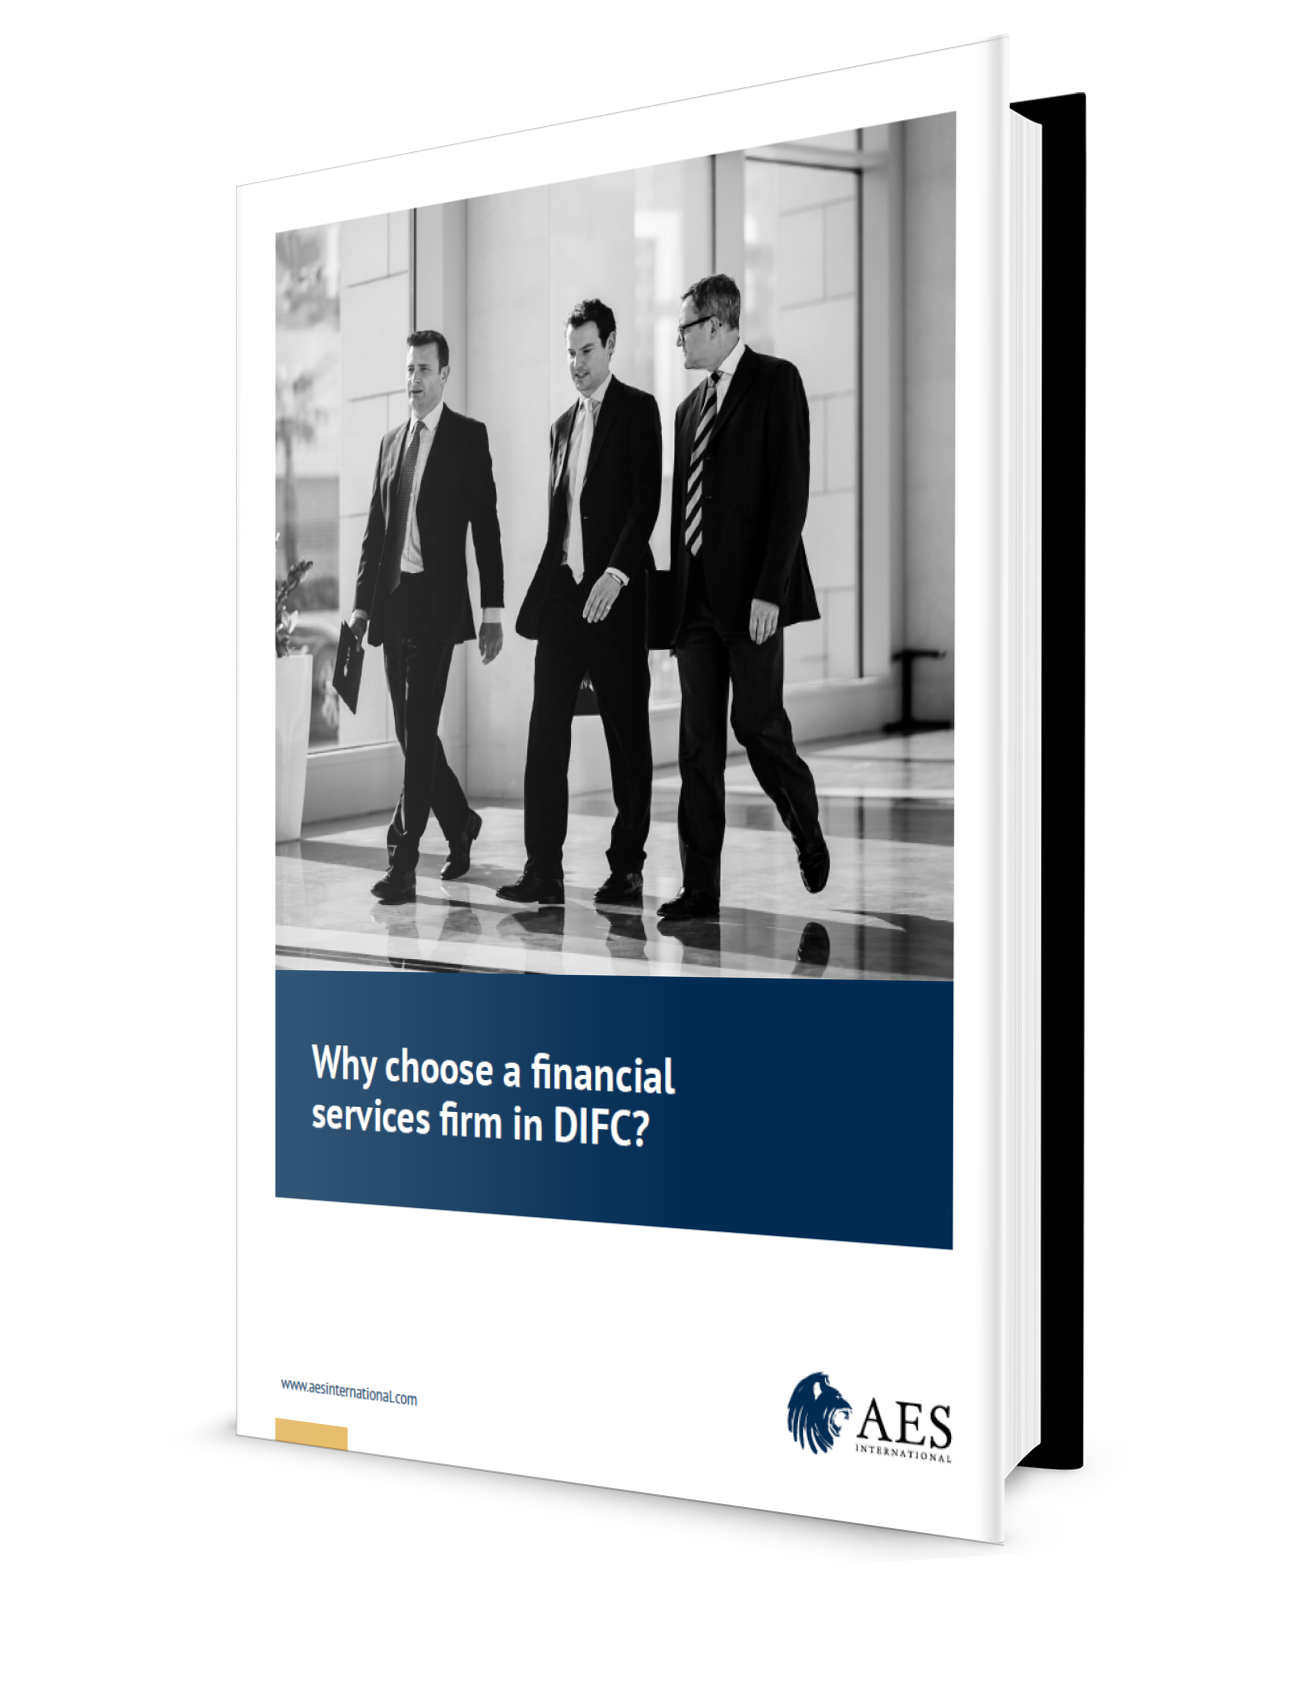 Why choose a financial services firm in DIFC